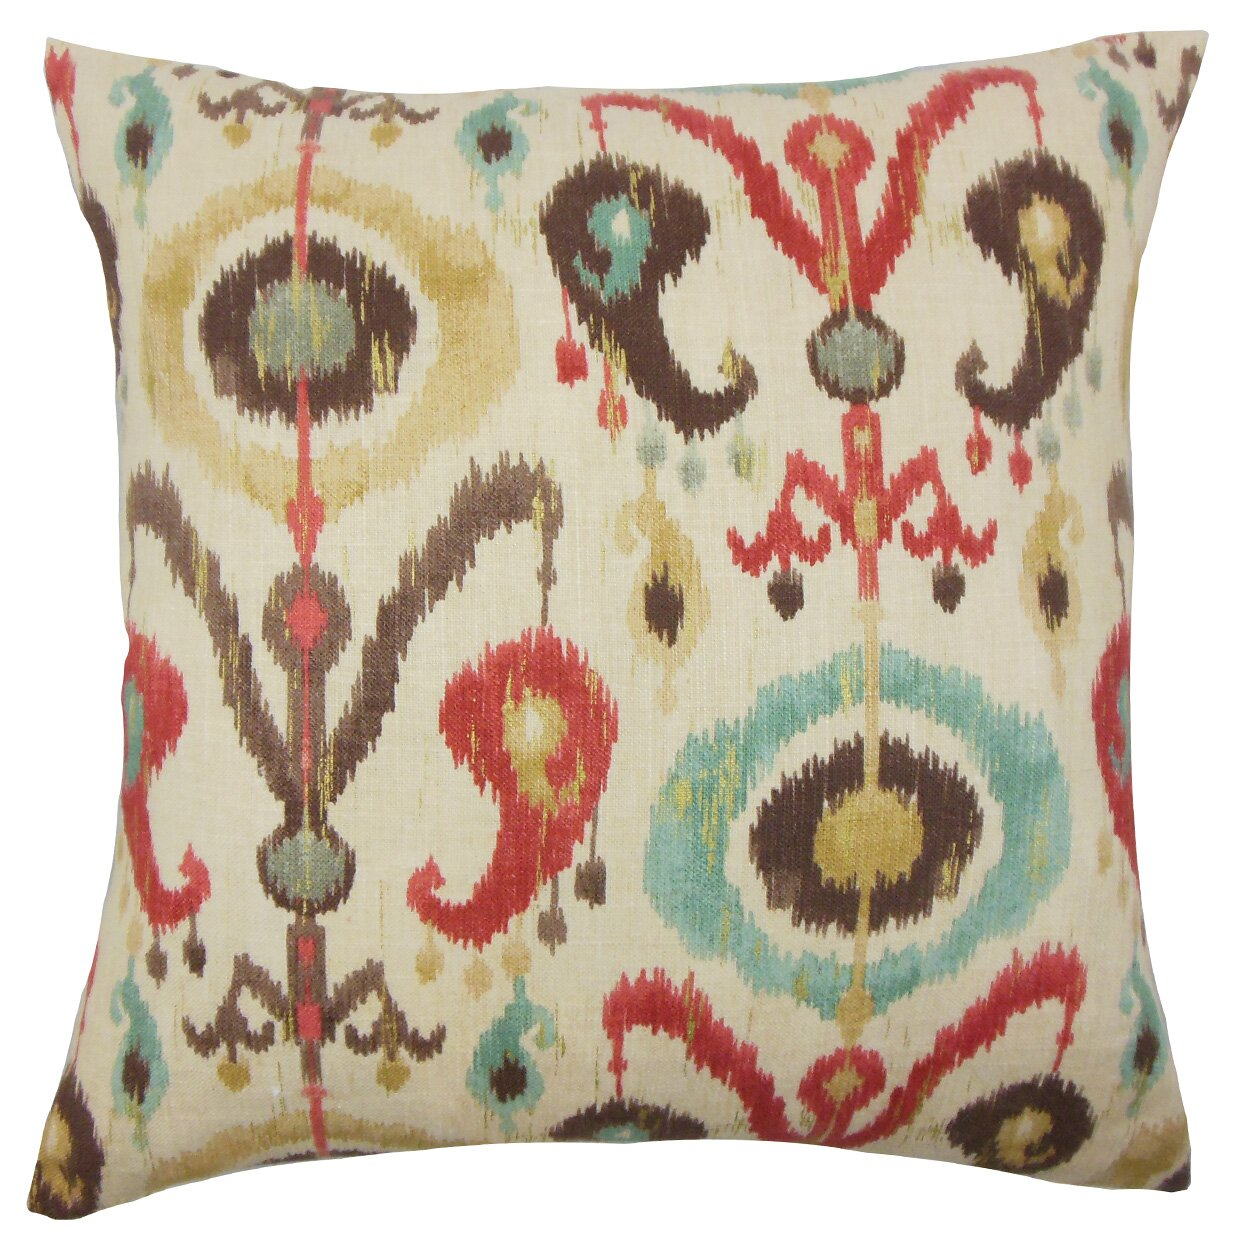 The Pillow Collection Ikea Ikat Cotton Throw Pillow